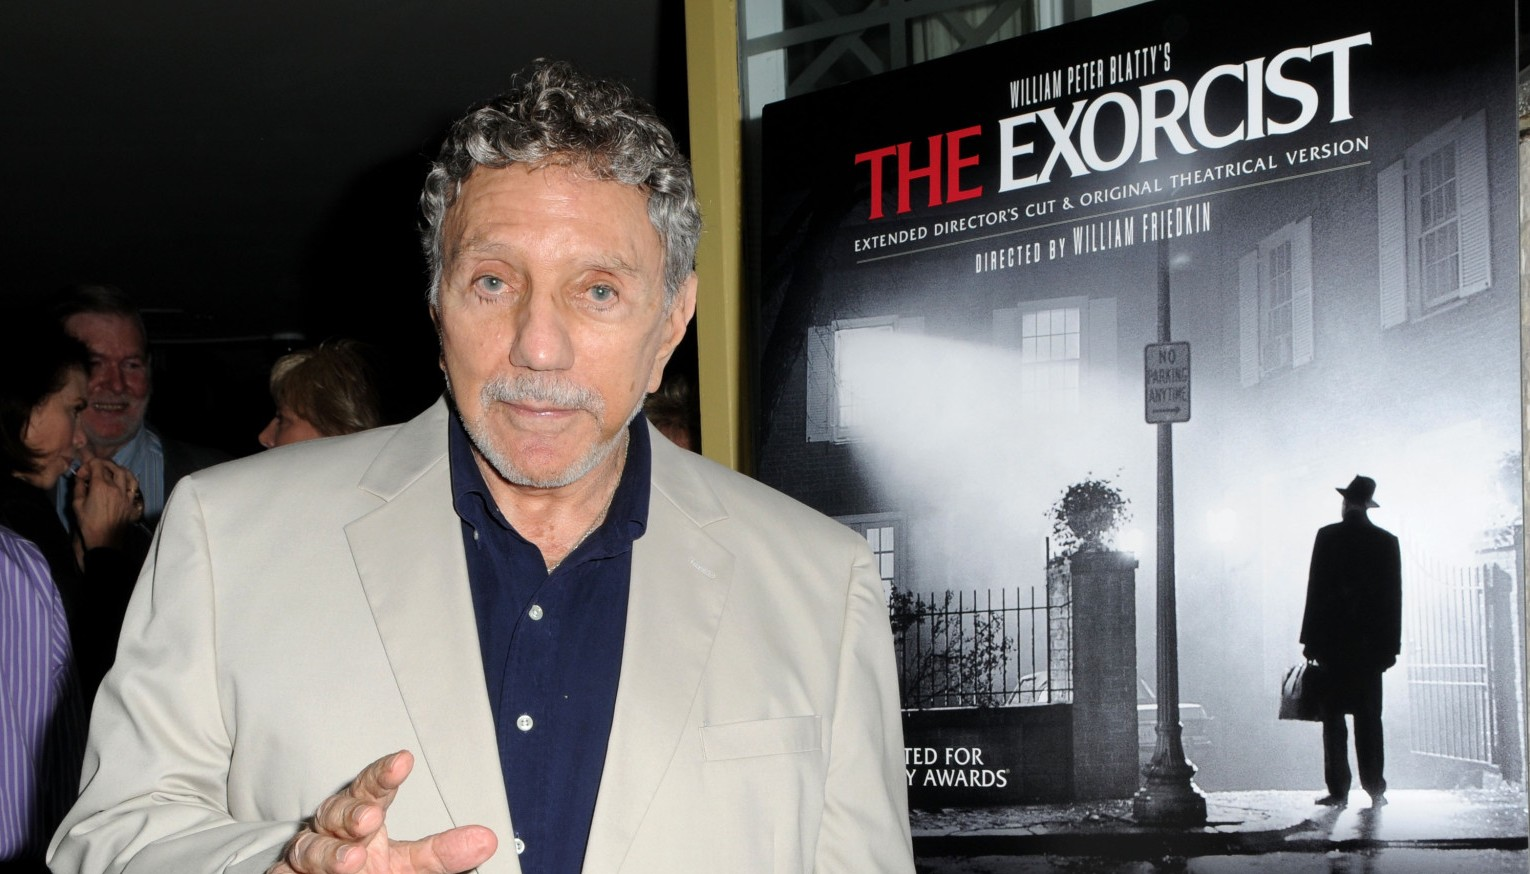 William Peter Blatty, l'auteur de L'Exorciste est décédé